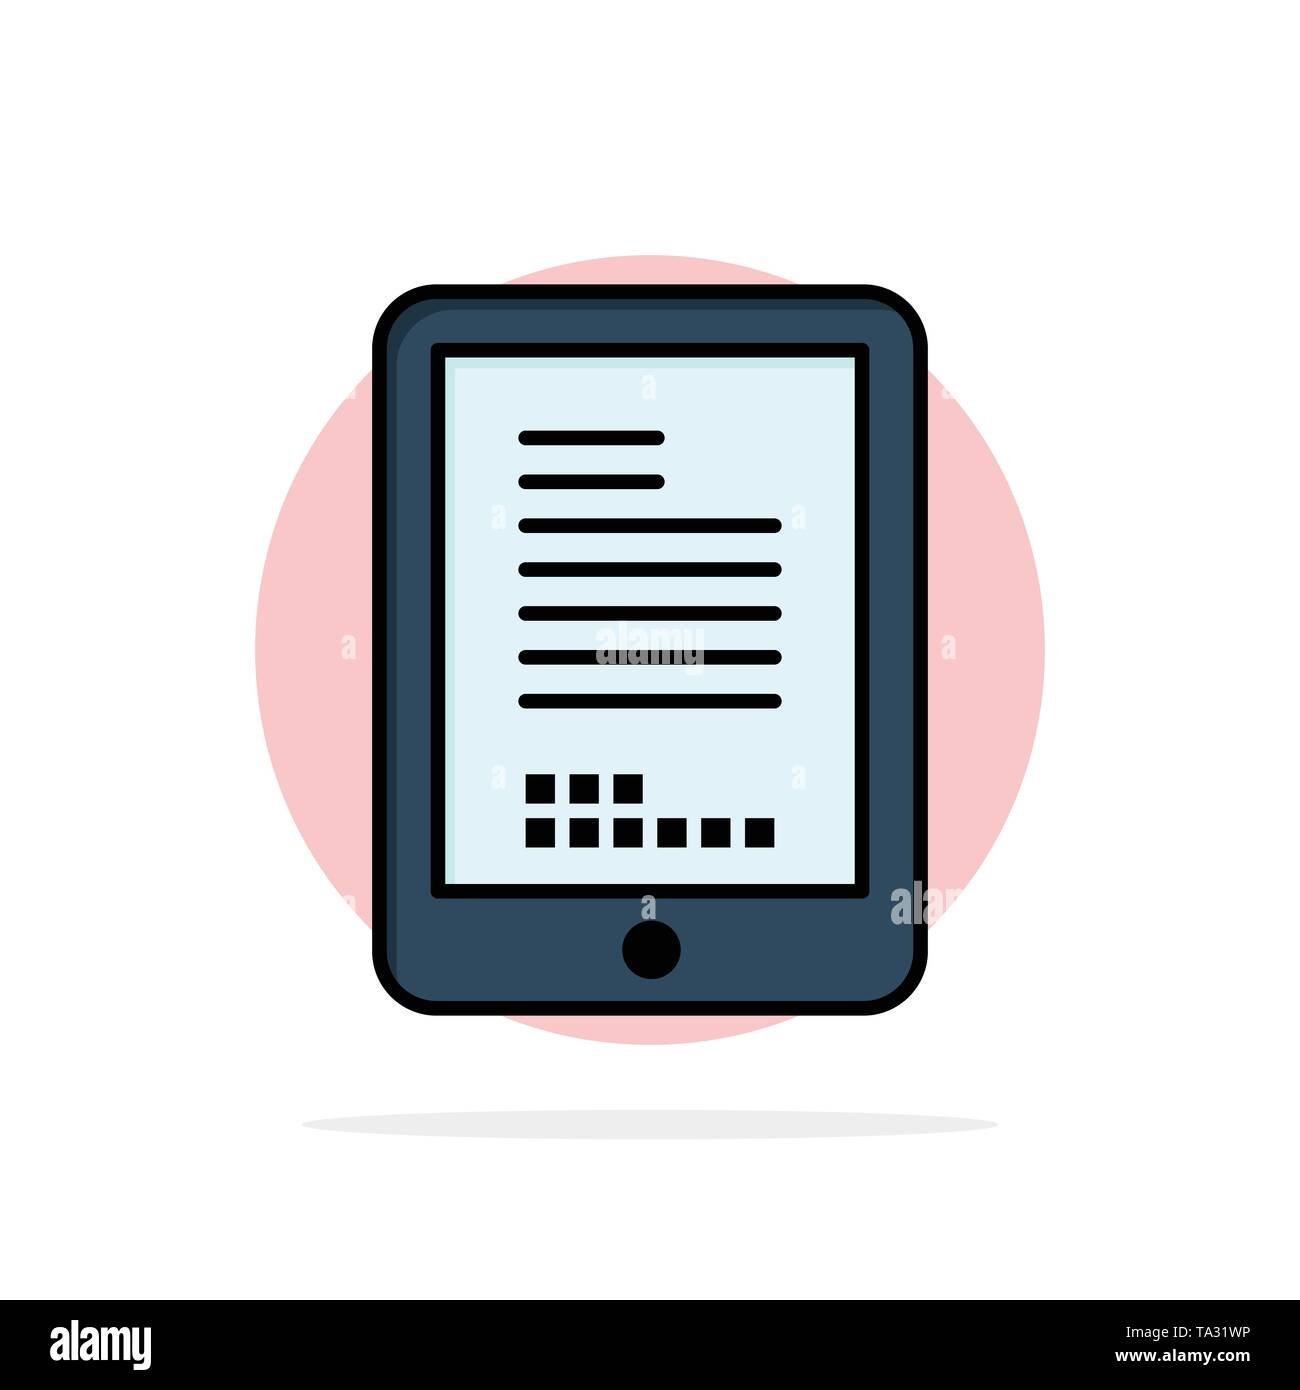 Mobile, Coding, Hardware, Cell Abstract Circle Background Flat color Icon - Stock Image